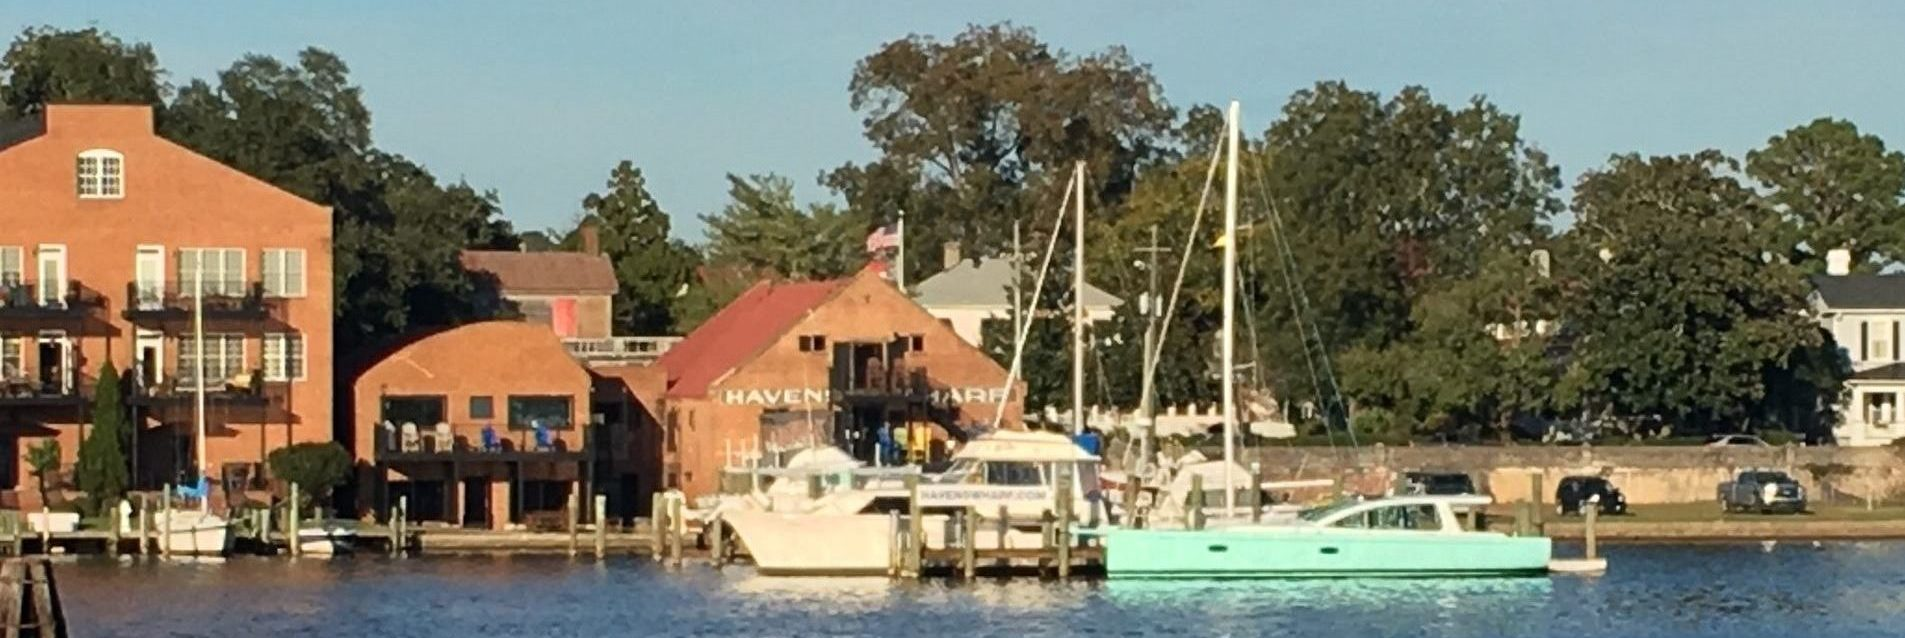 Havens Wharf in Washington, NC